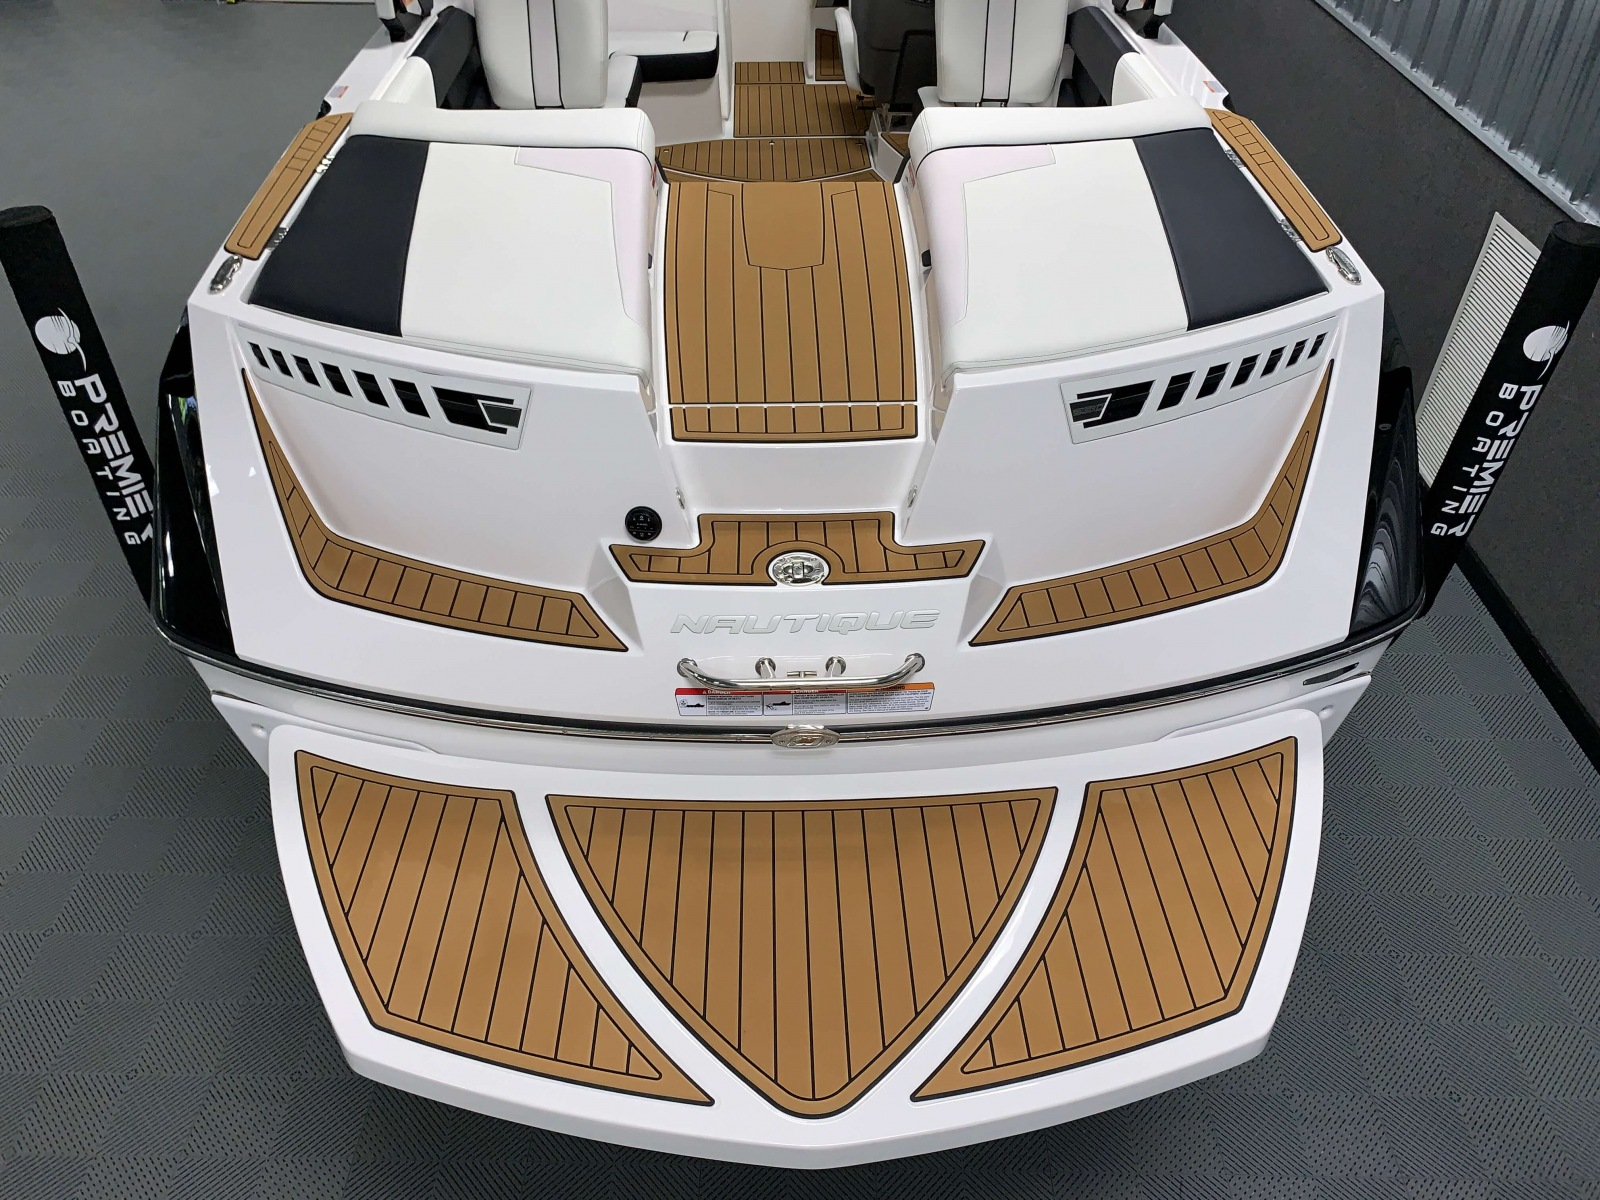 Transom of the 2021 Nautique 230 Wake Boat